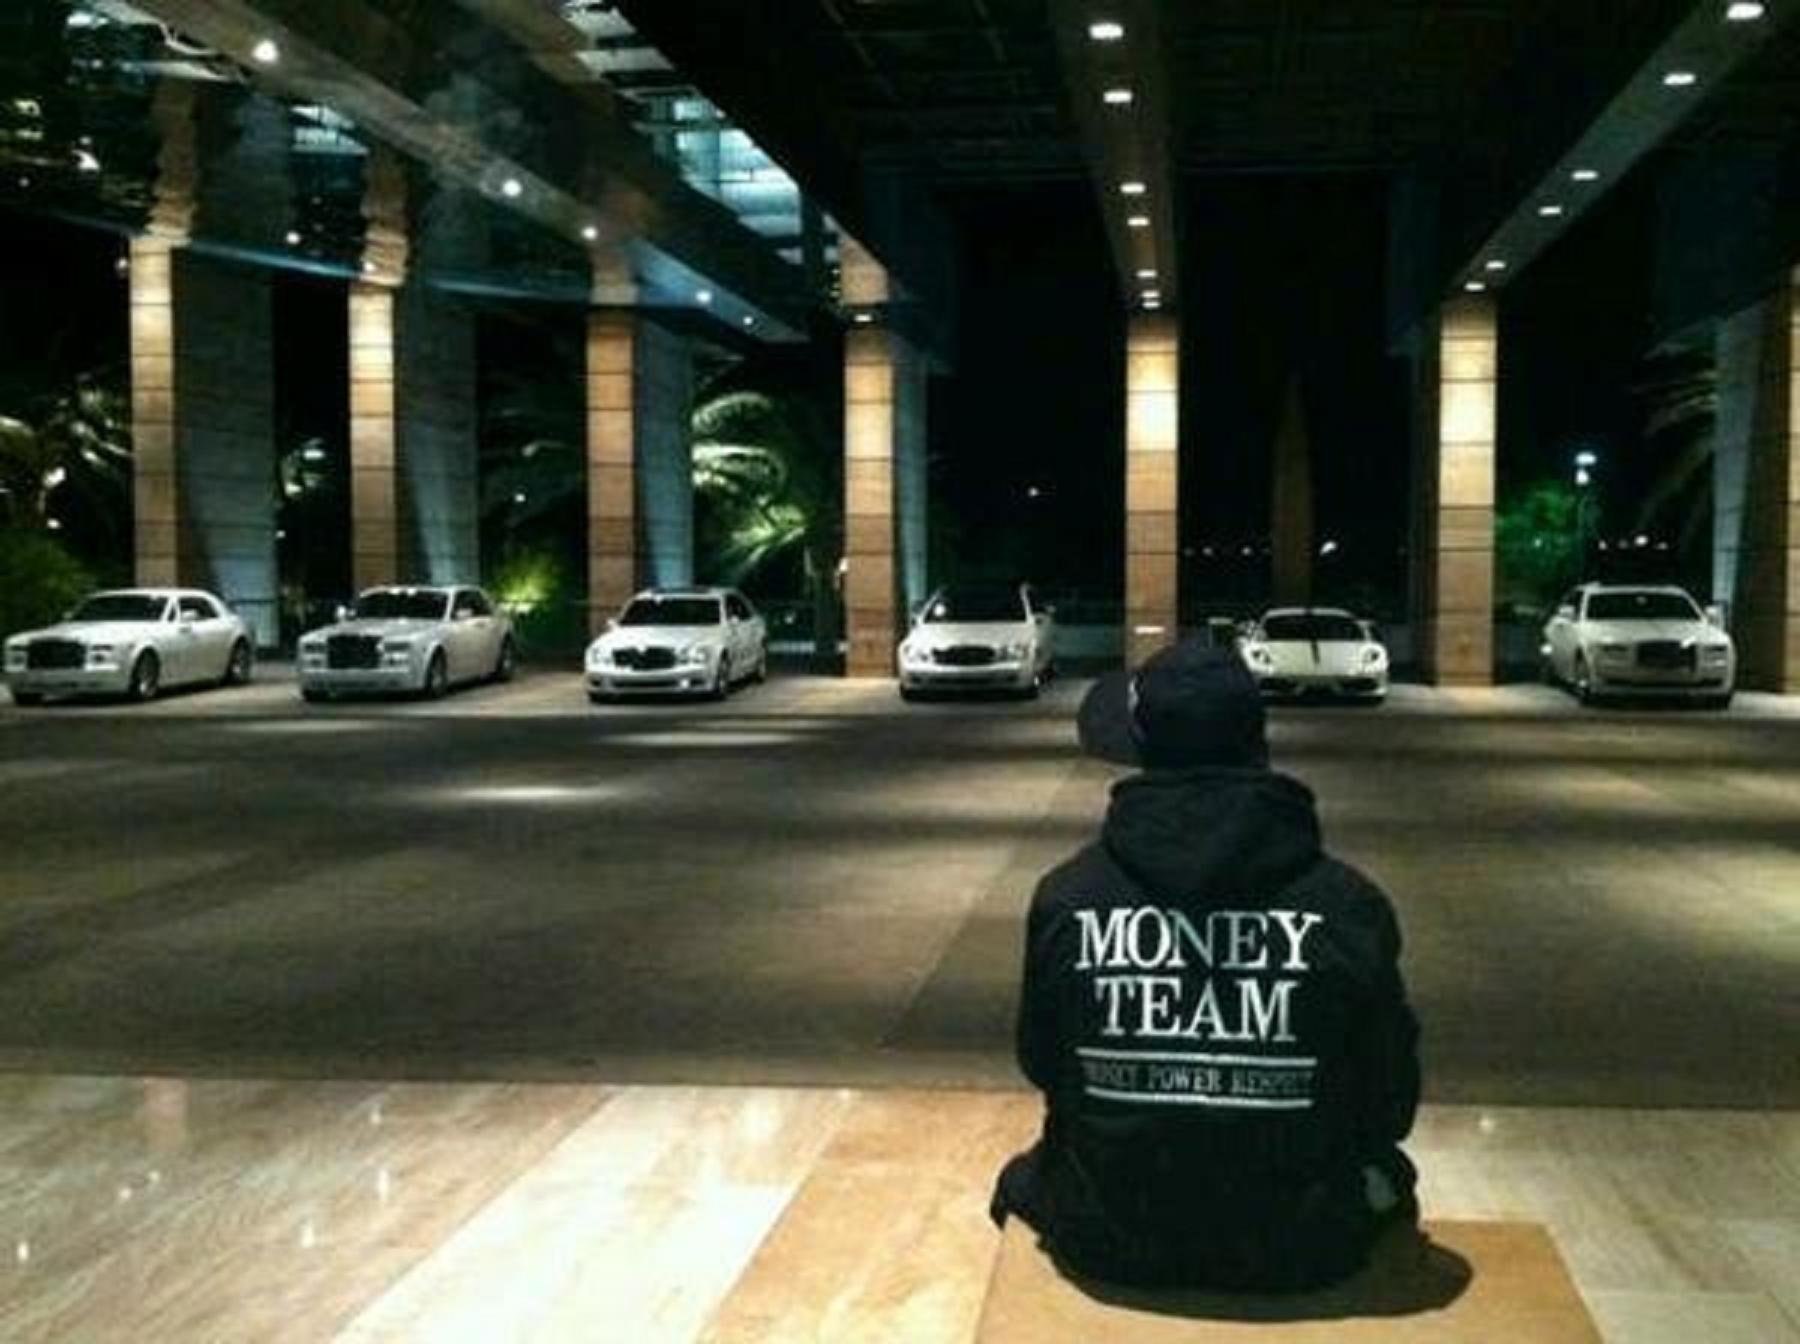 Anyone have a high resolution picture of this Money Team 1800x1344